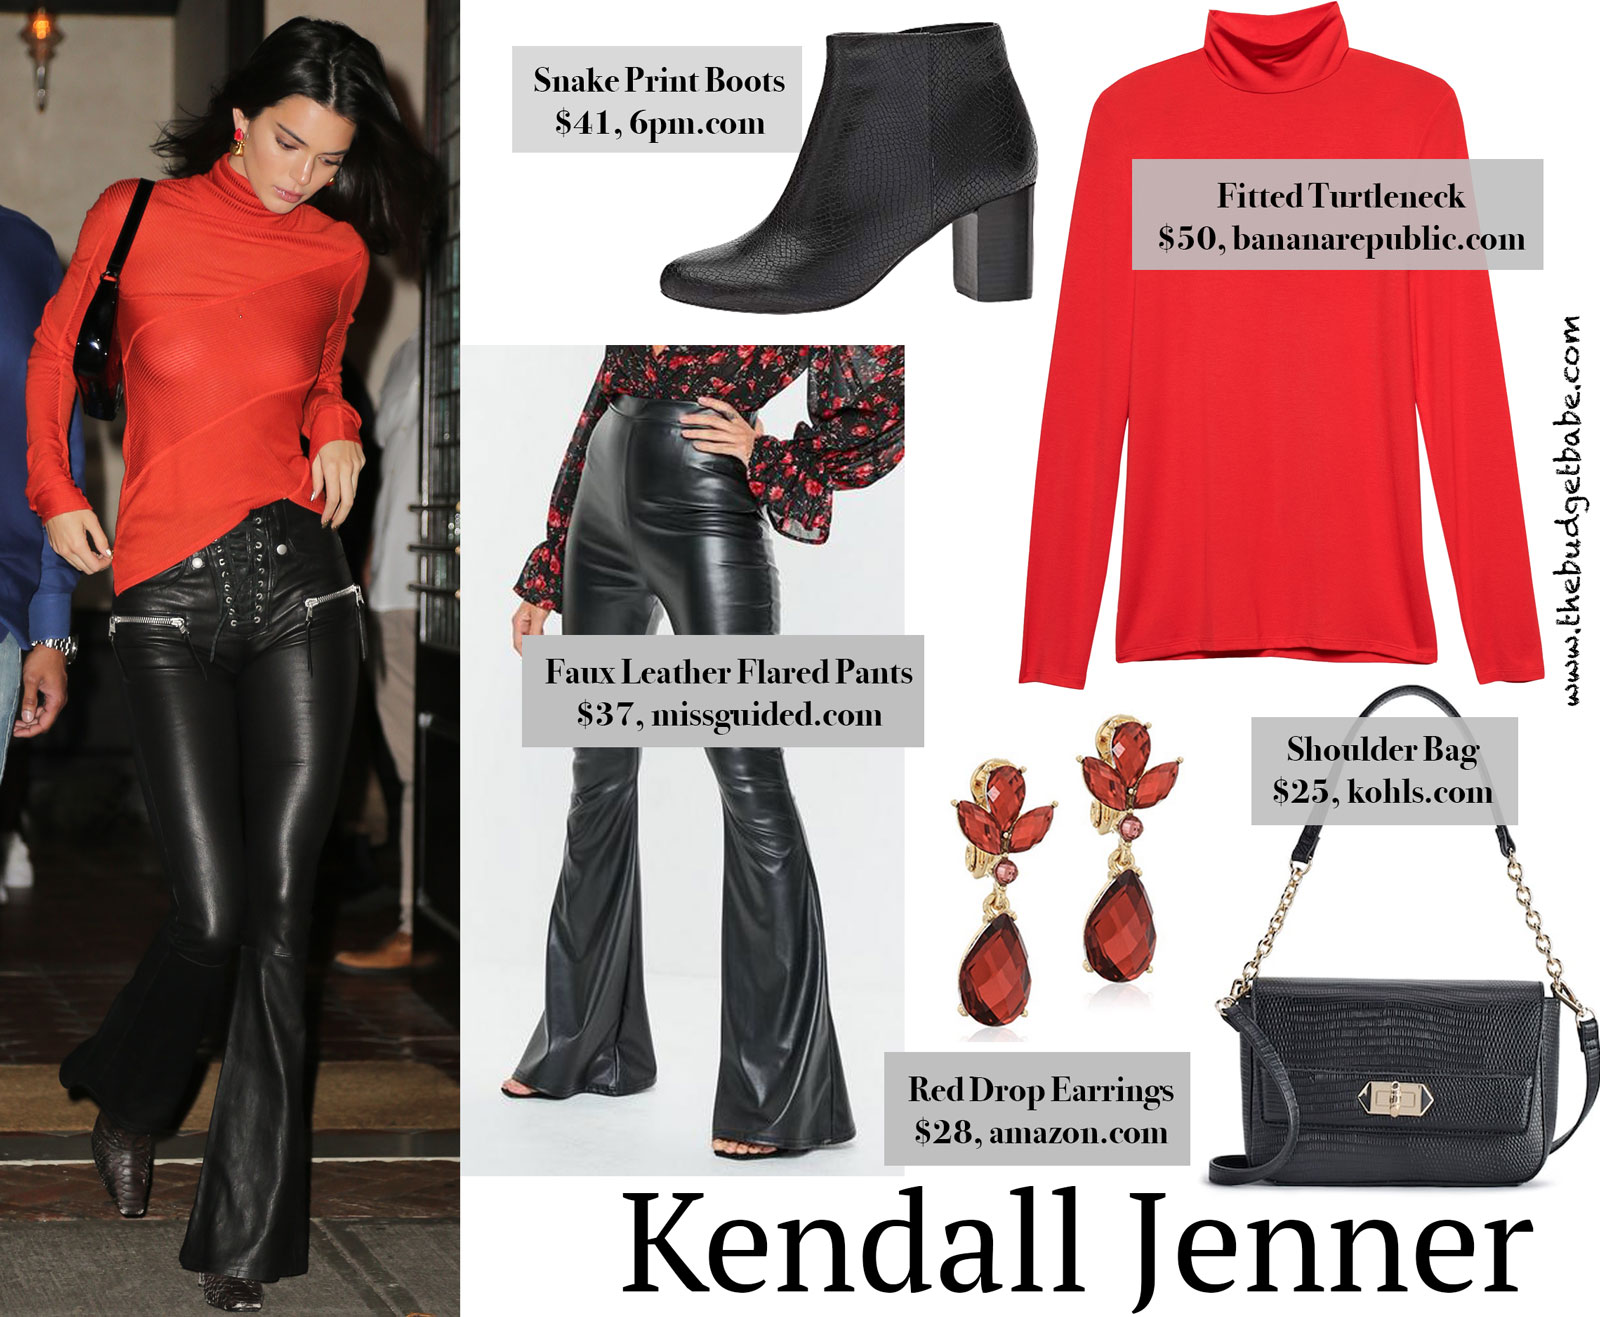 619e287e1b166 Kendall Jenner's Red Turtleneck and Flared Leather Pants Look for ...